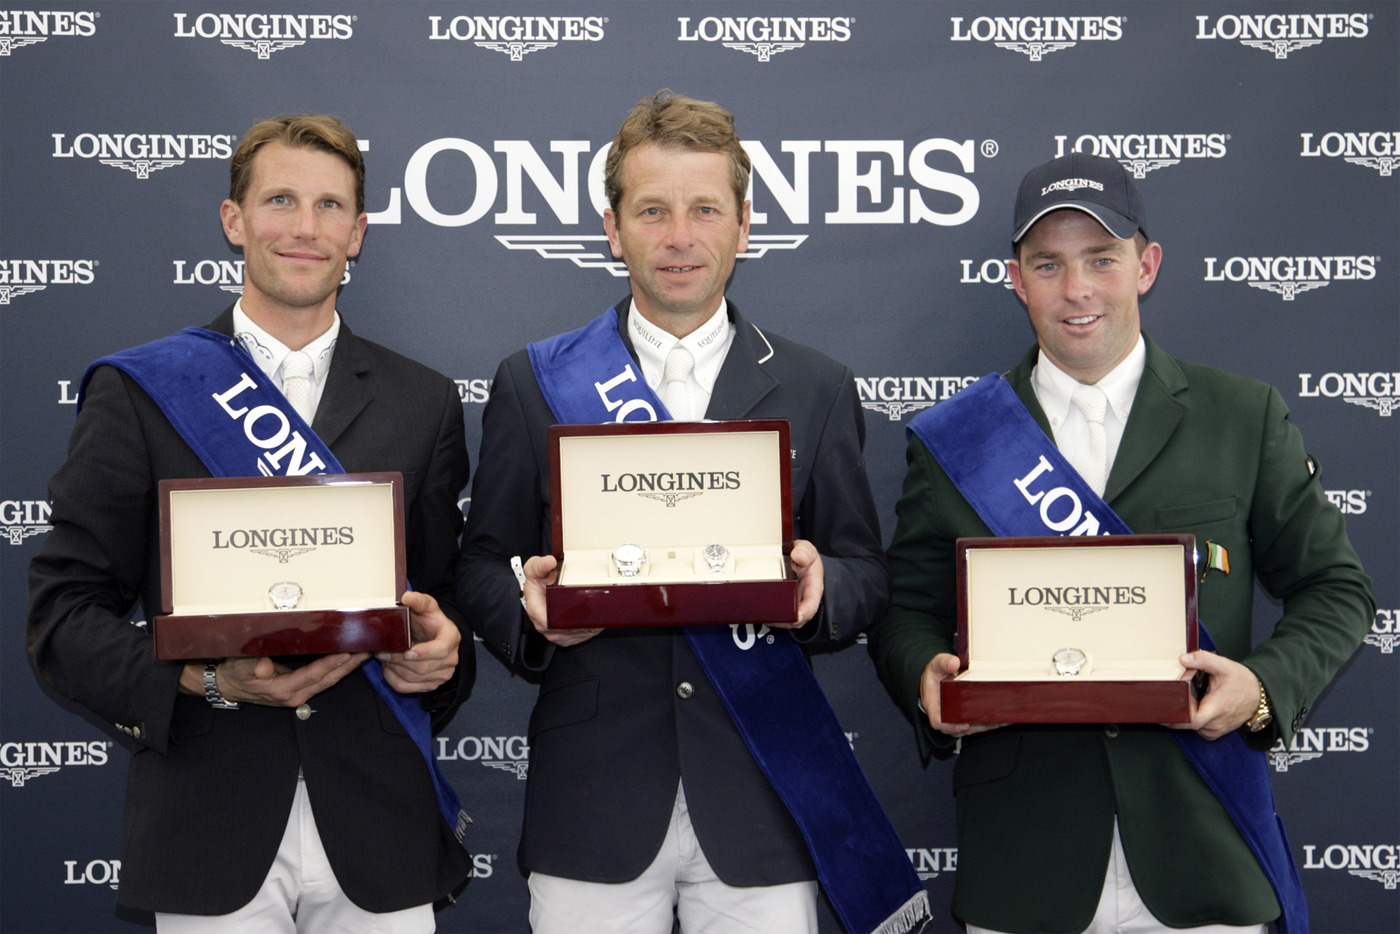 Longines Show Jumping Event: Longines Press Award for Elegance 2012 4